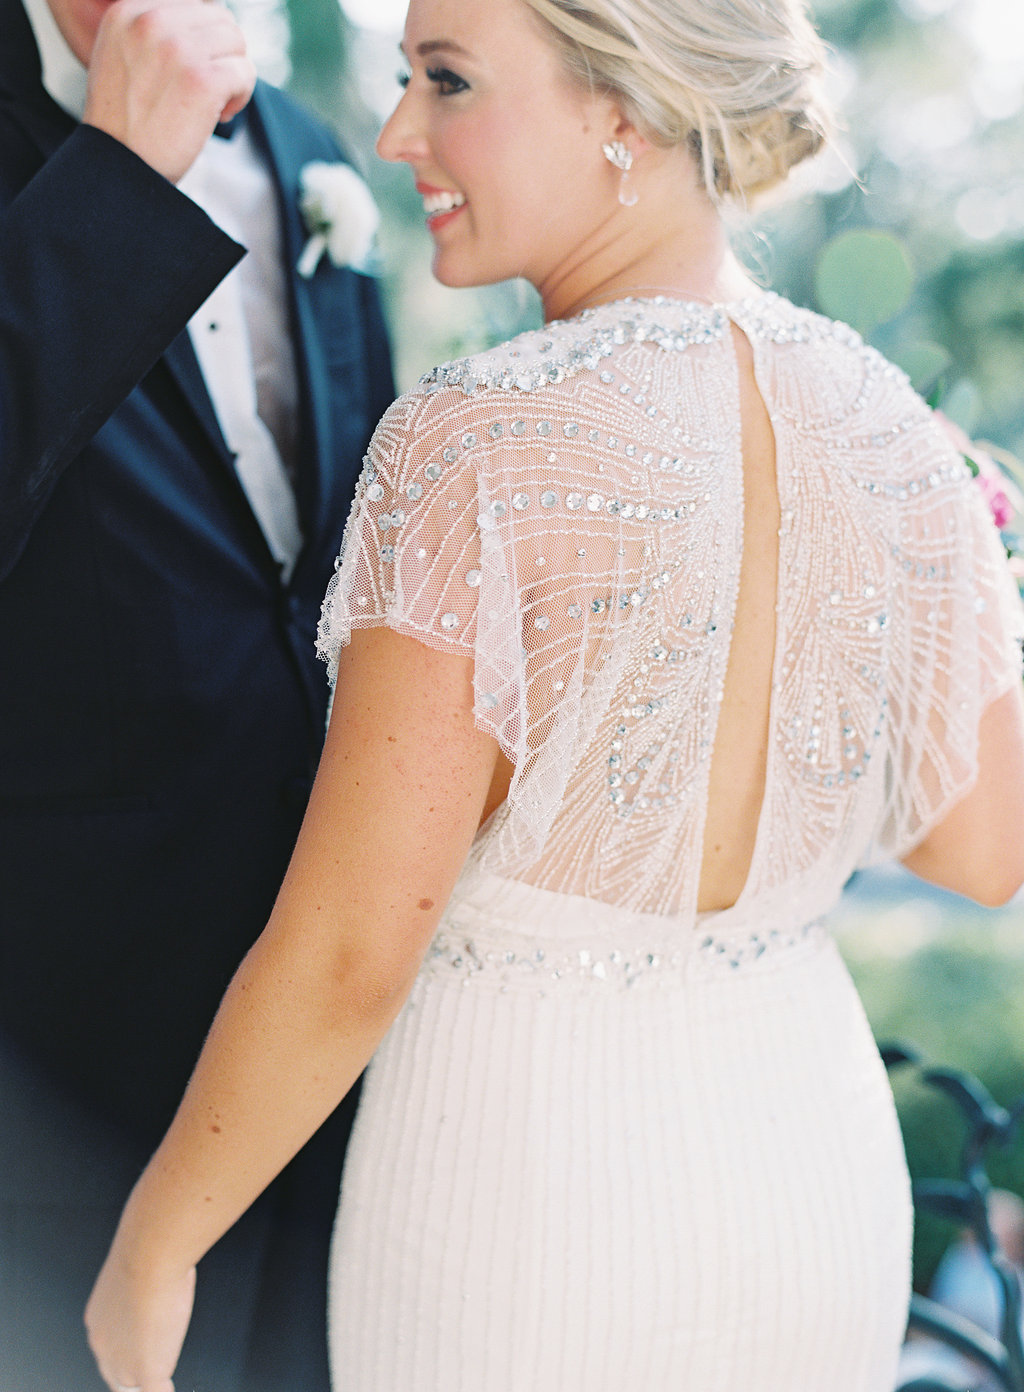 Jenny Packham gown at Hilton Head SC wedding at Oldfield Club  //  A Lowcountry Wedding Magazine